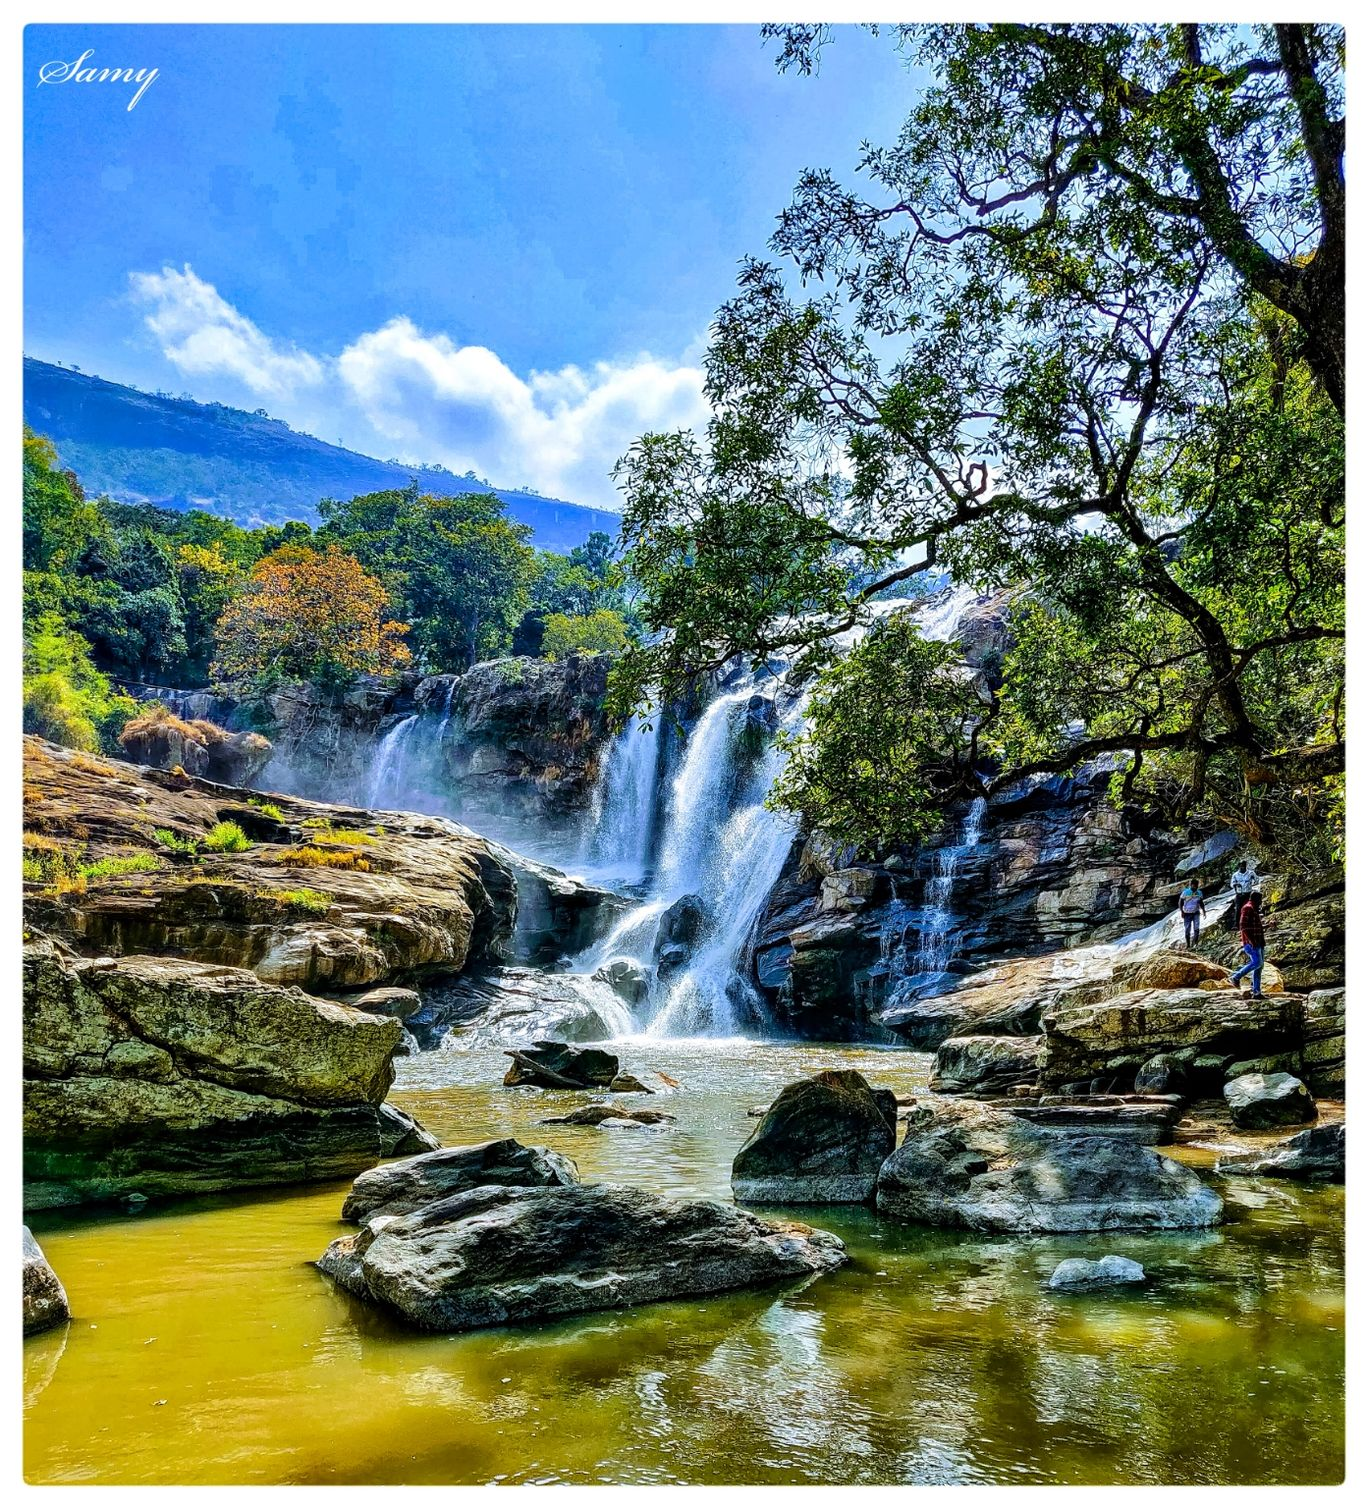 Photo of Thoovanam Waterfalls By Periyasamy Shanmugam